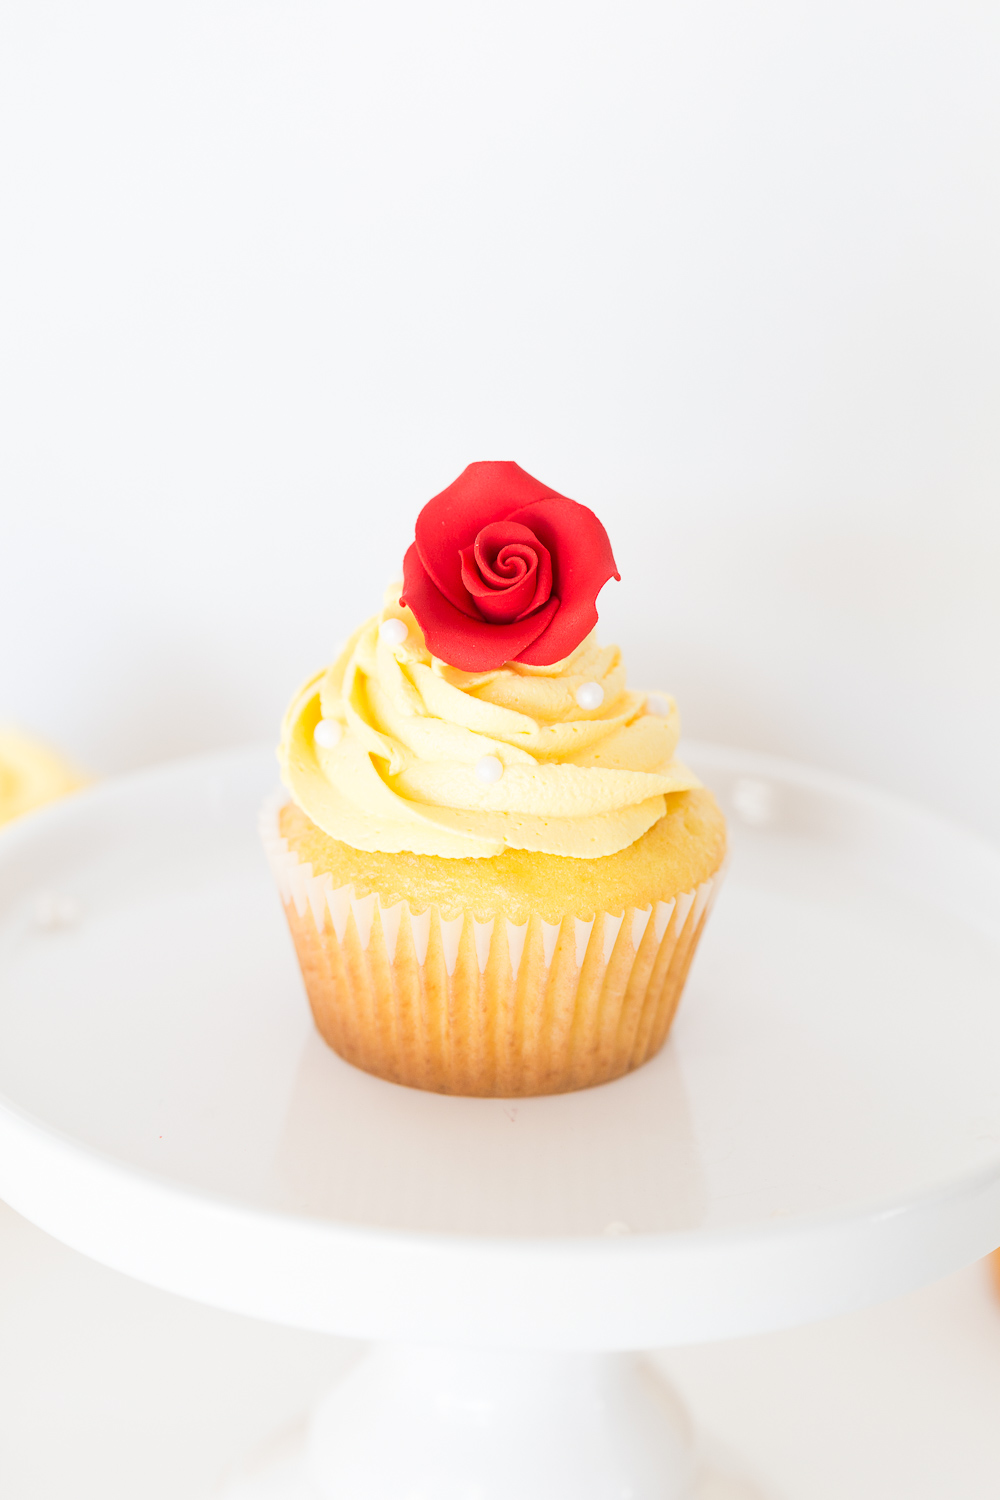 Belle Cupcakes | Beauty and the Beast | Beauty and the Beast Treats | Cupcakes | Disney Treats | Princess Party